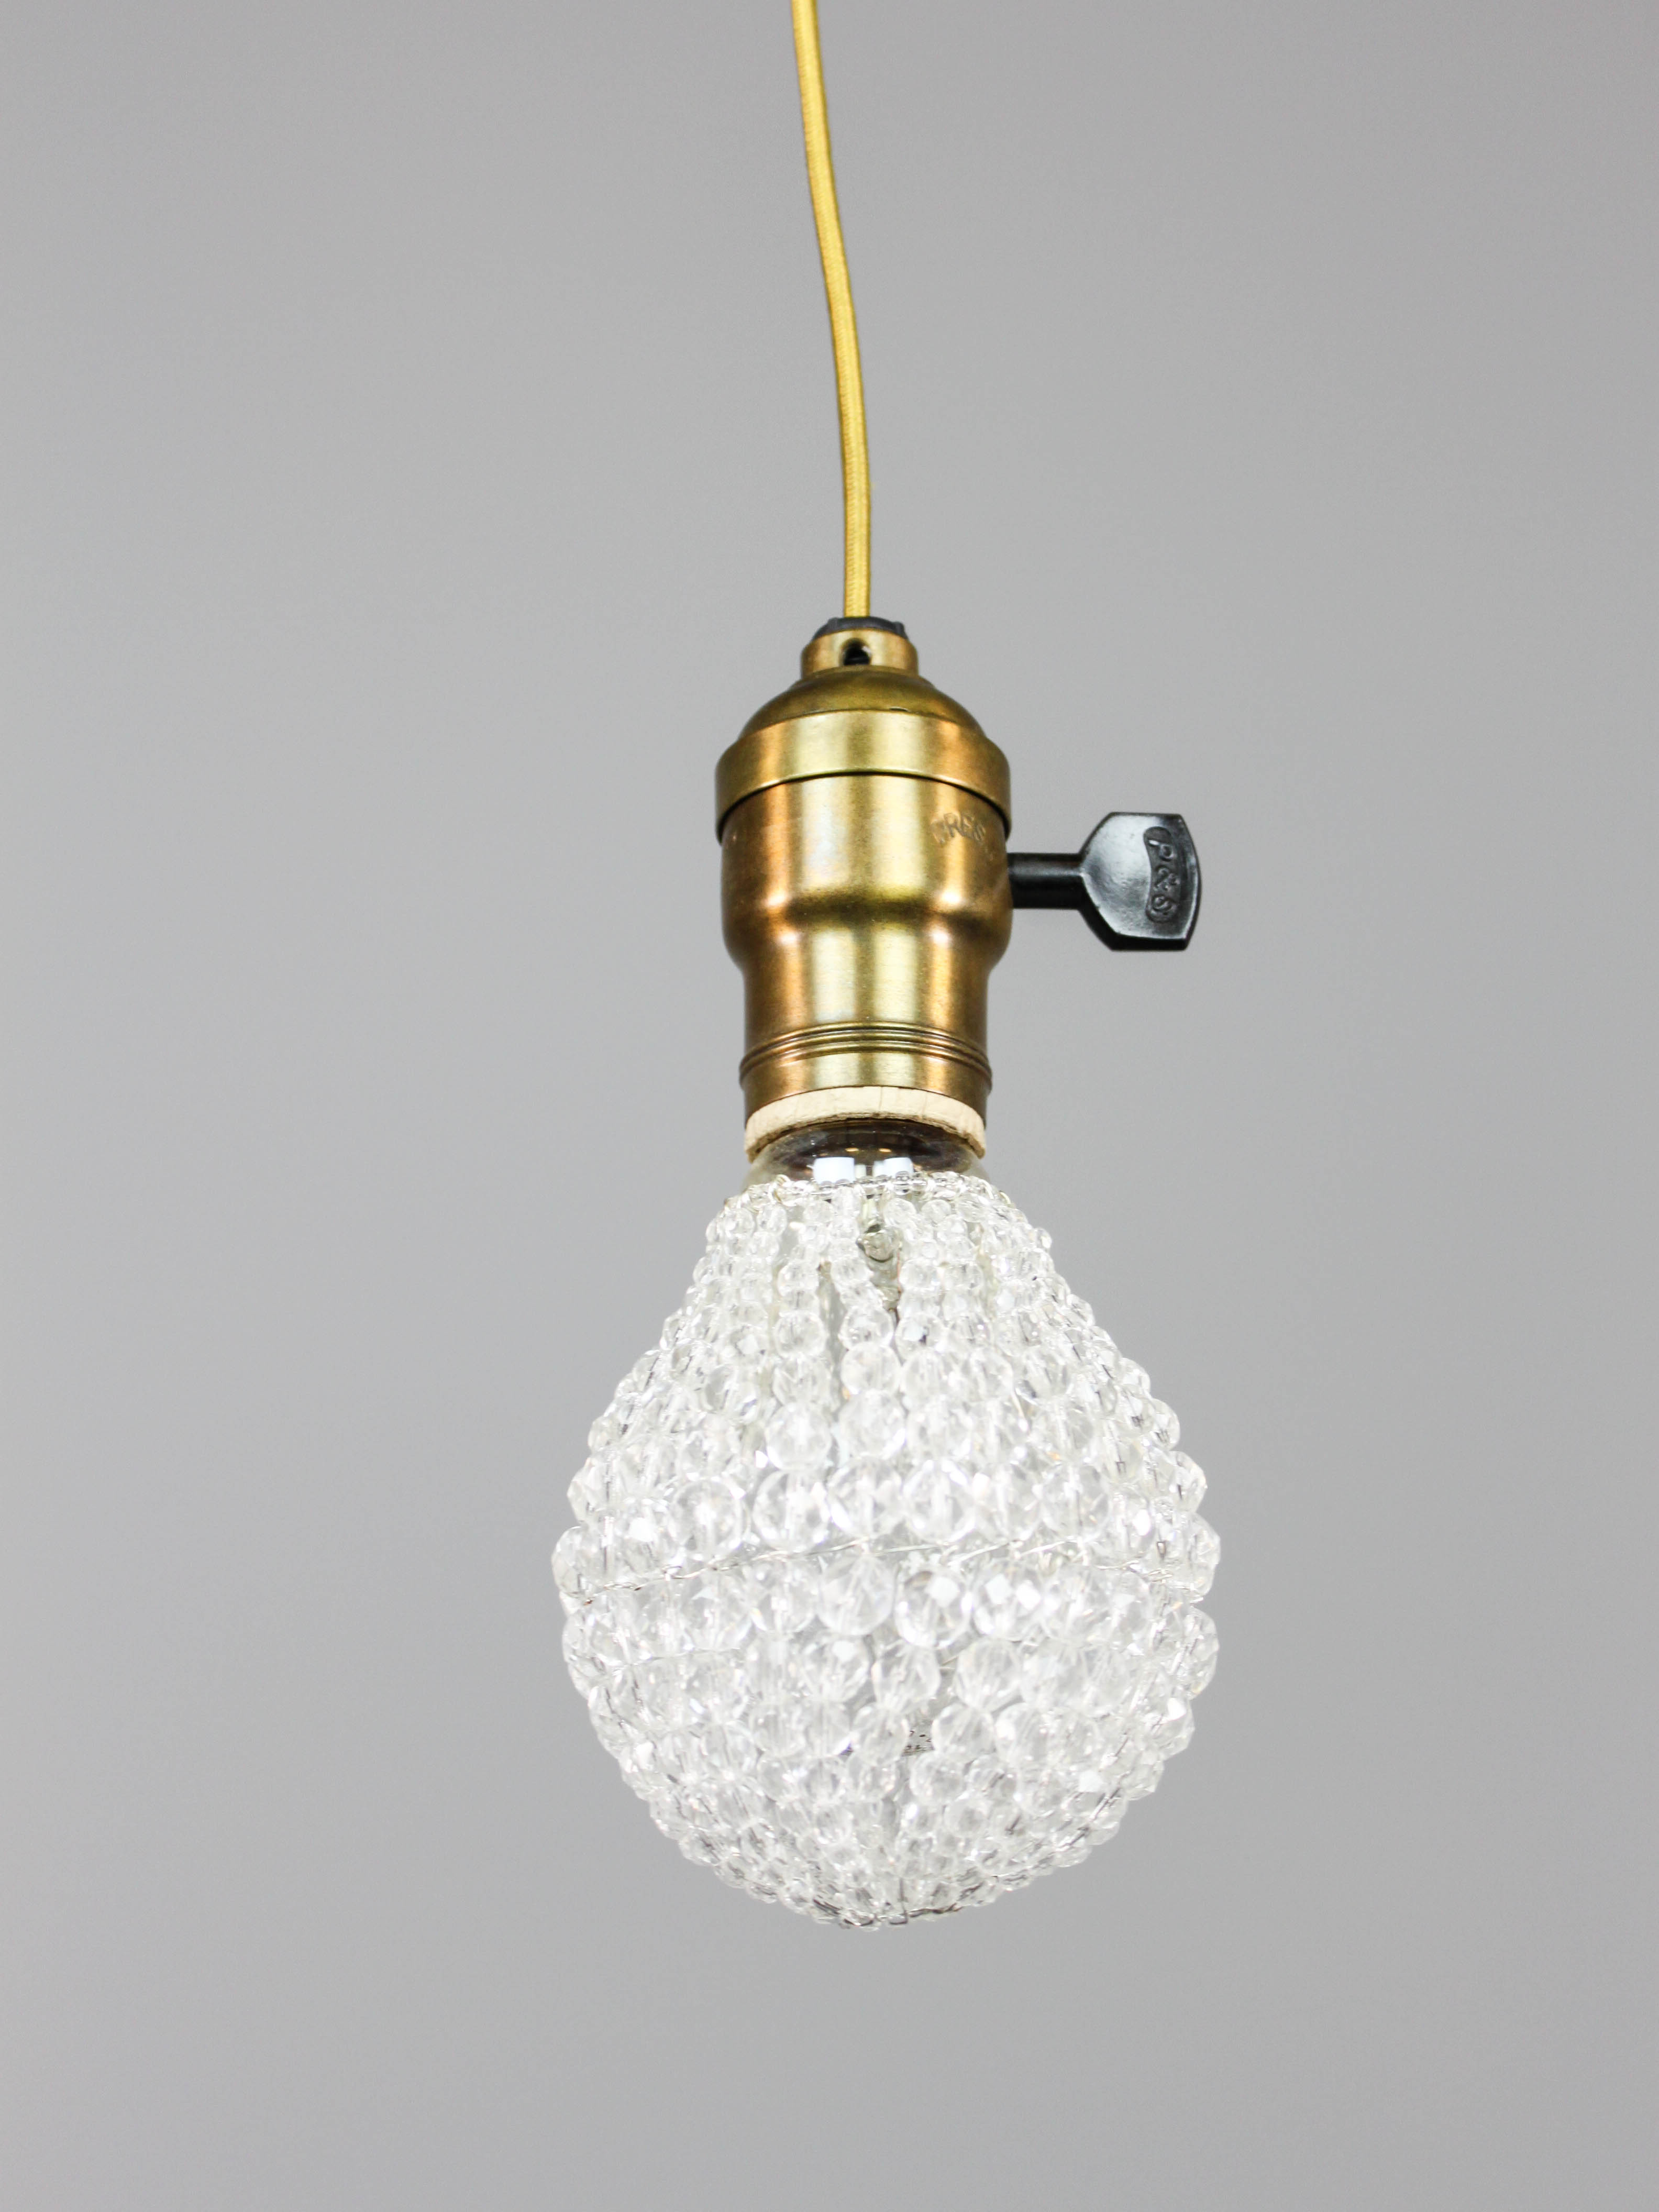 The Jude Corded Crystal Pendant Light